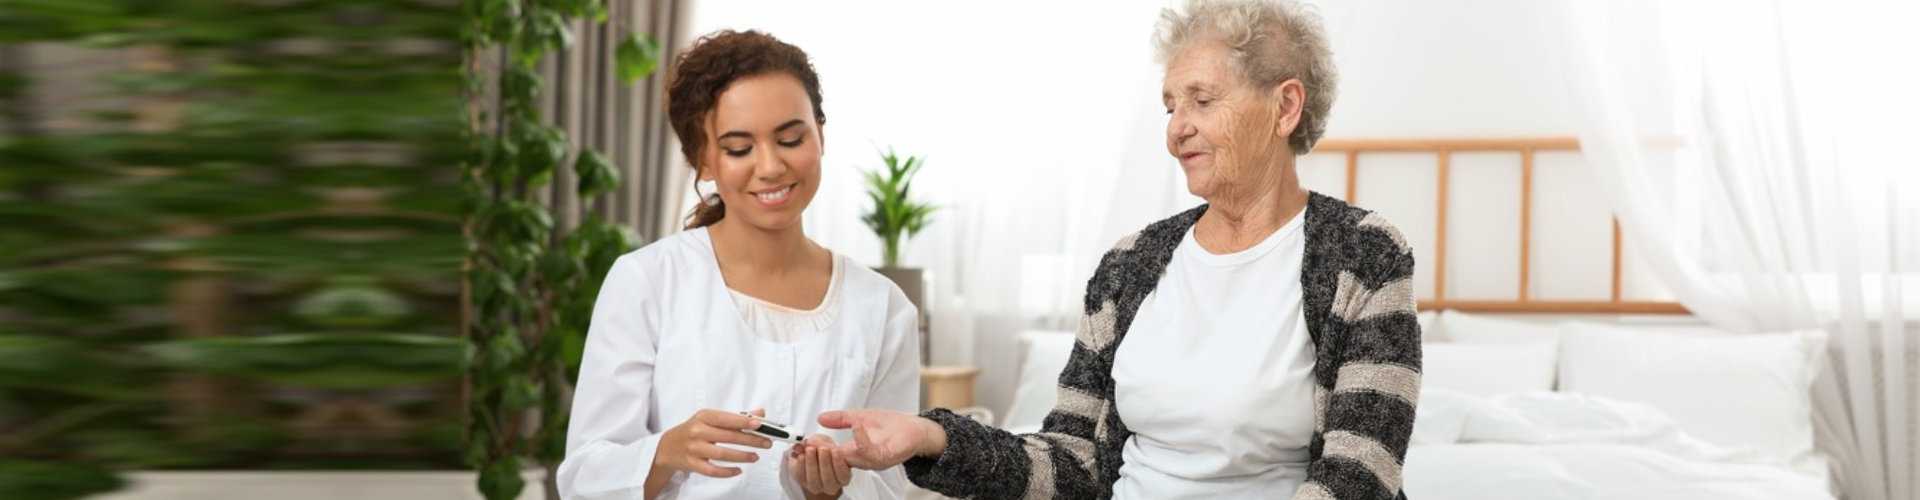 caregiver helping a patient